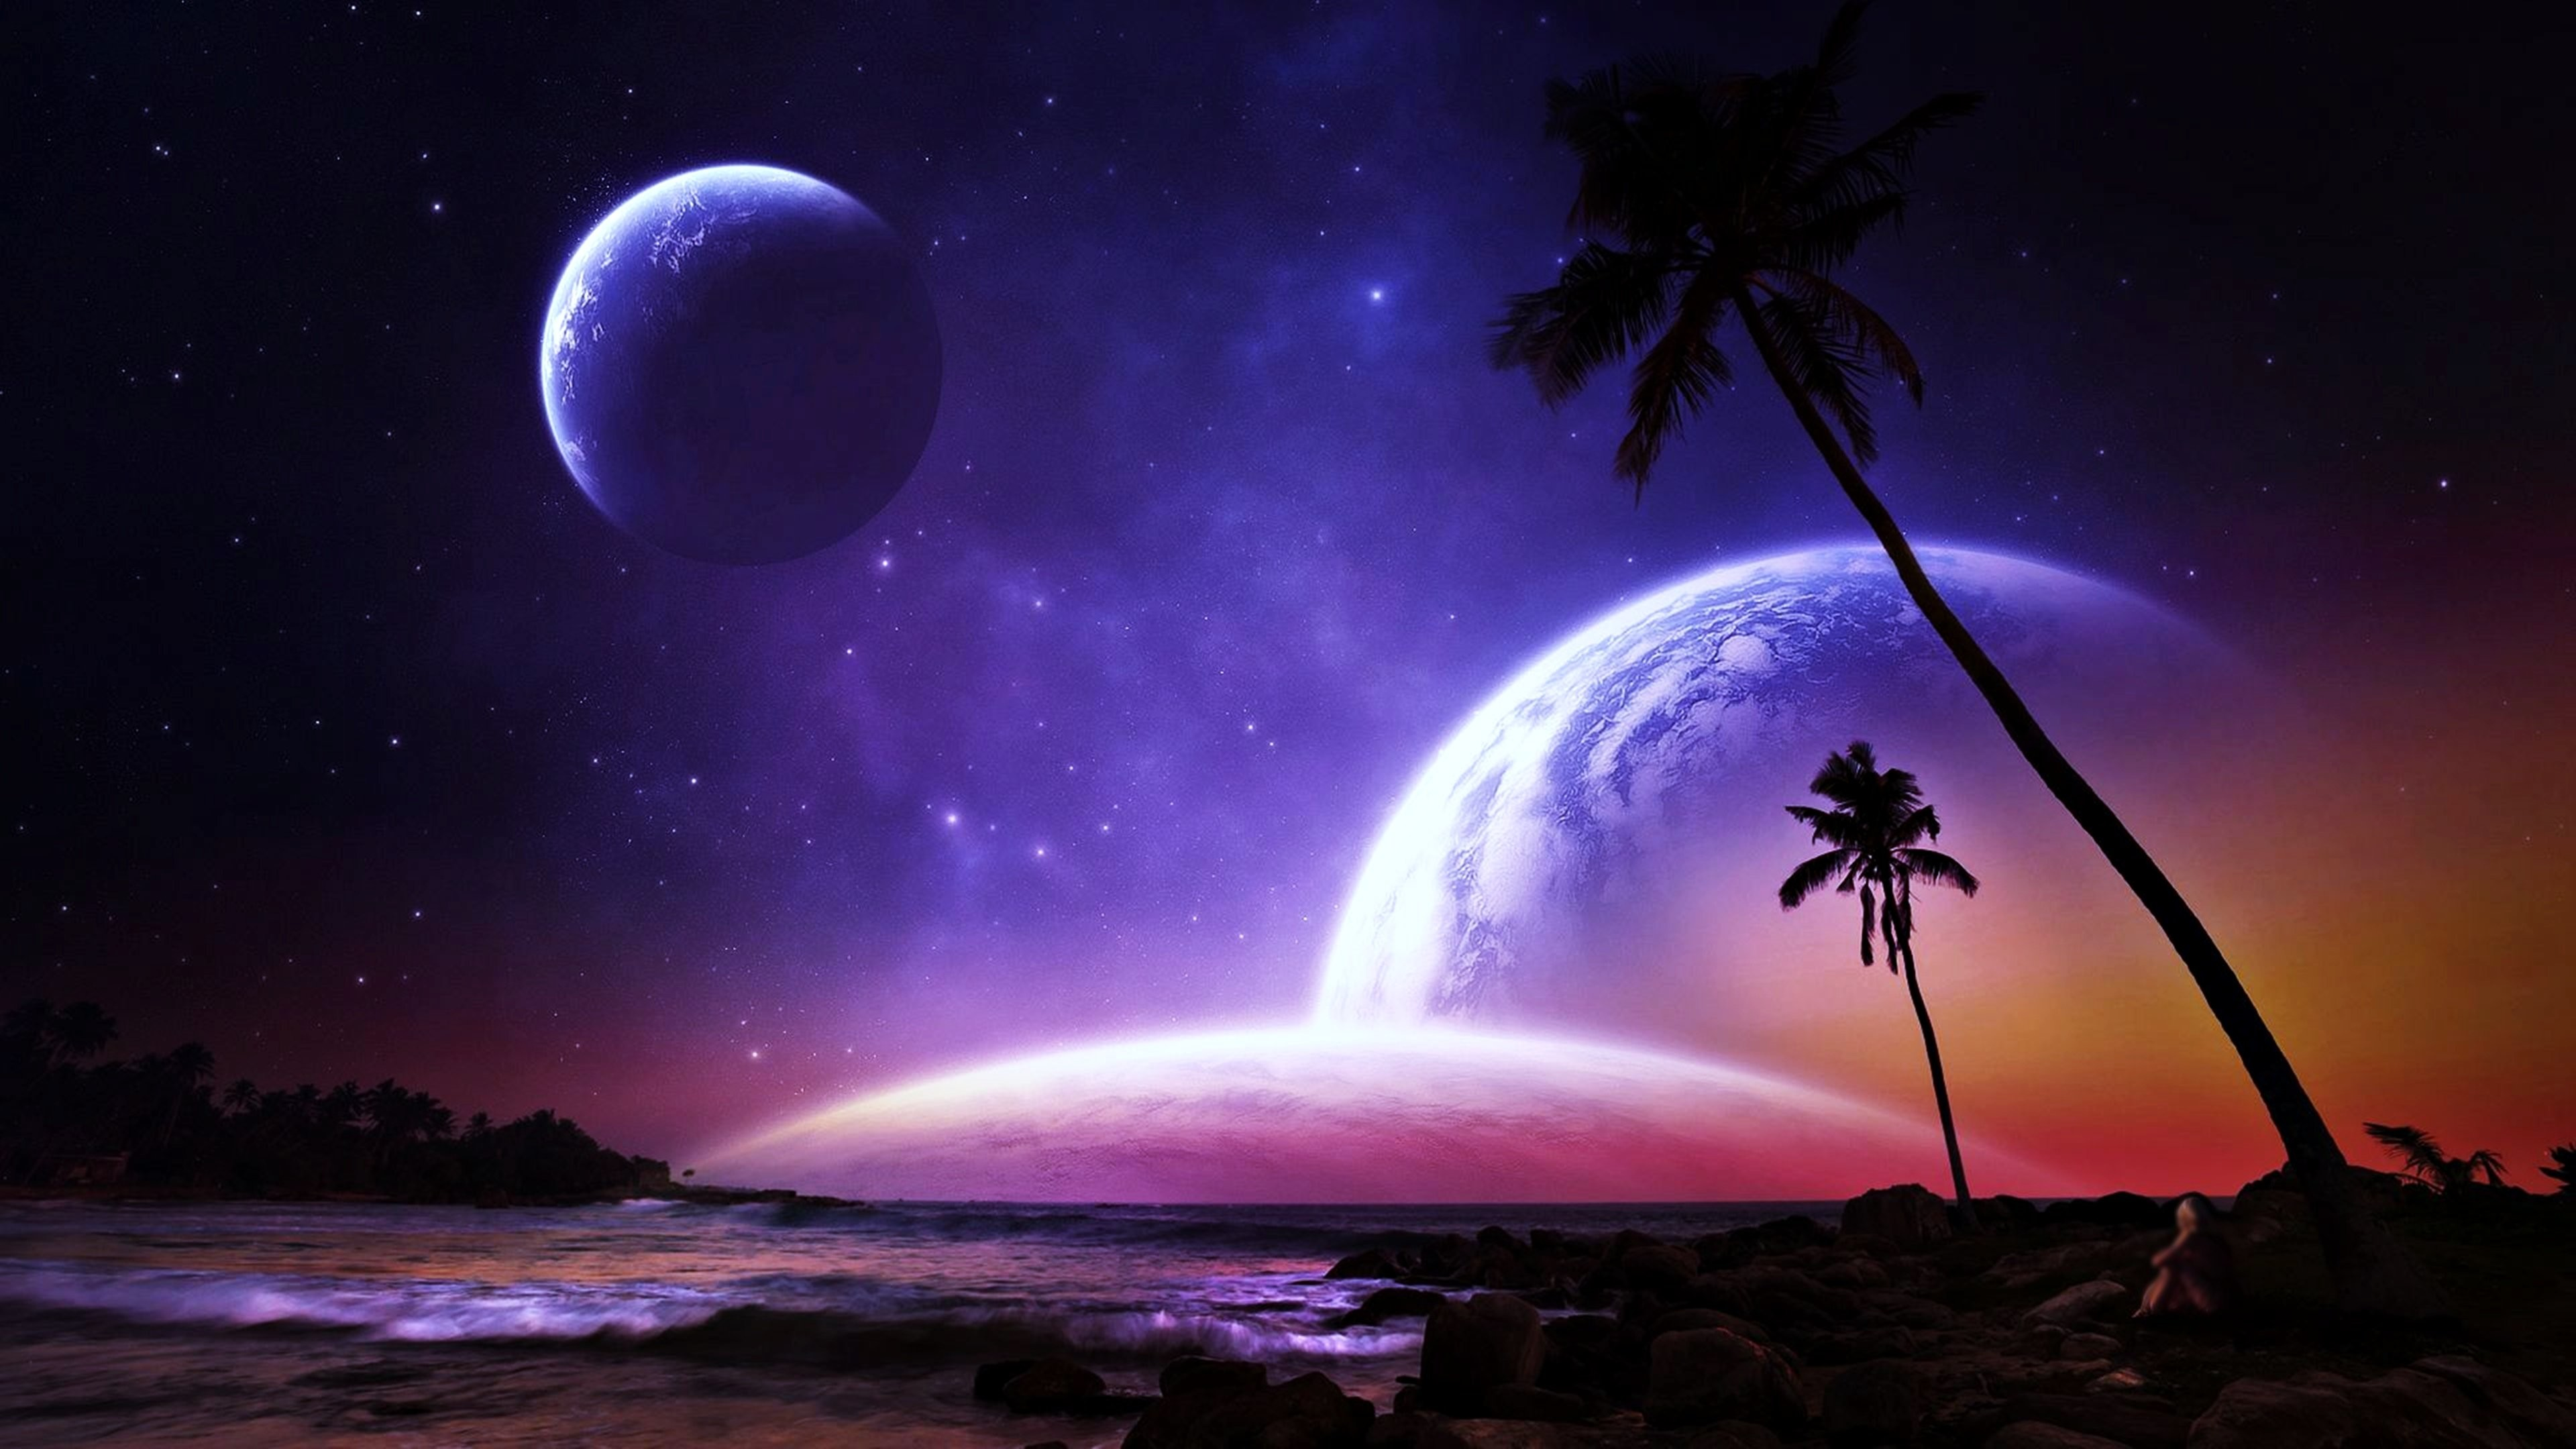 Fantasy planets wallpaper 80 images - Galaxy christmas wallpaper ...